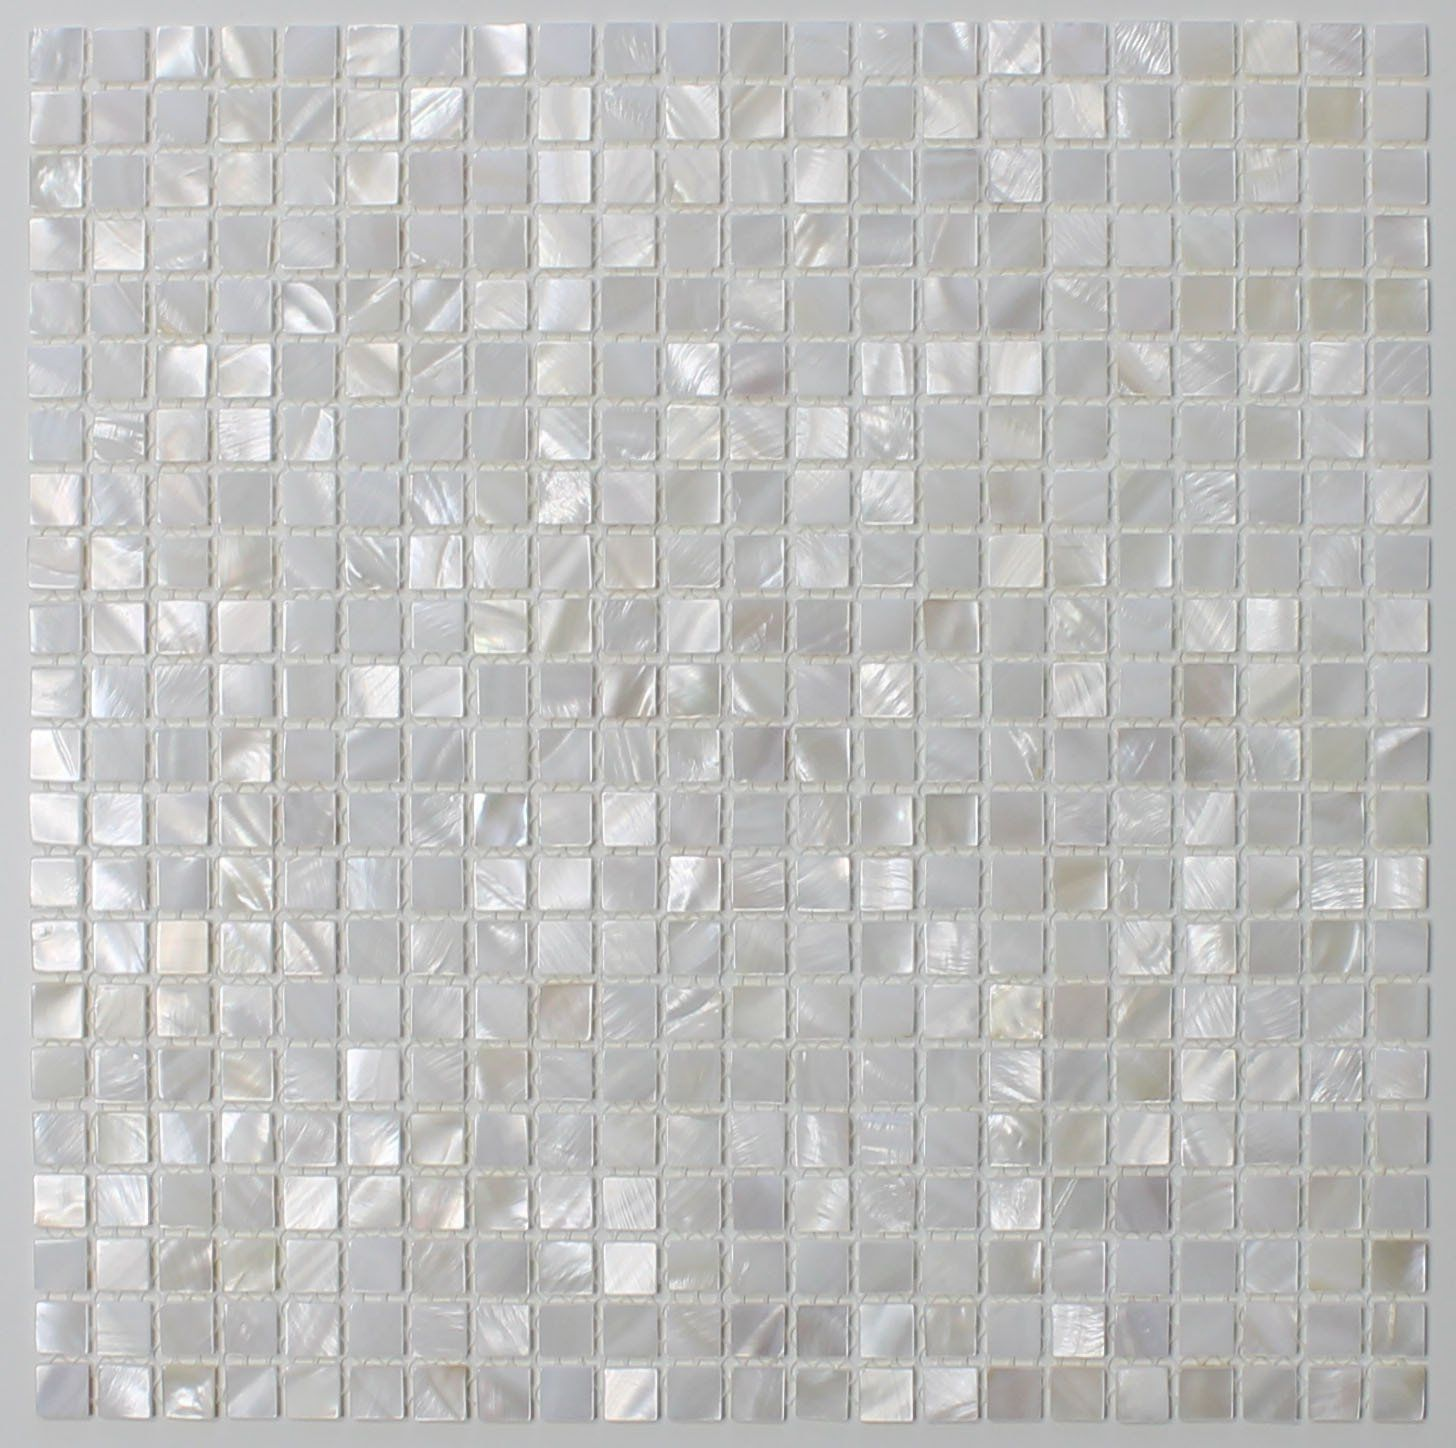 10 Square Feet Mother Of Pearl Oyster White Mini Square Mosaic Tiles Visit The Mosaic Tile Kitchen Mosaic Tile Backsplash Kitchen Kitchen Tiles Backsplash